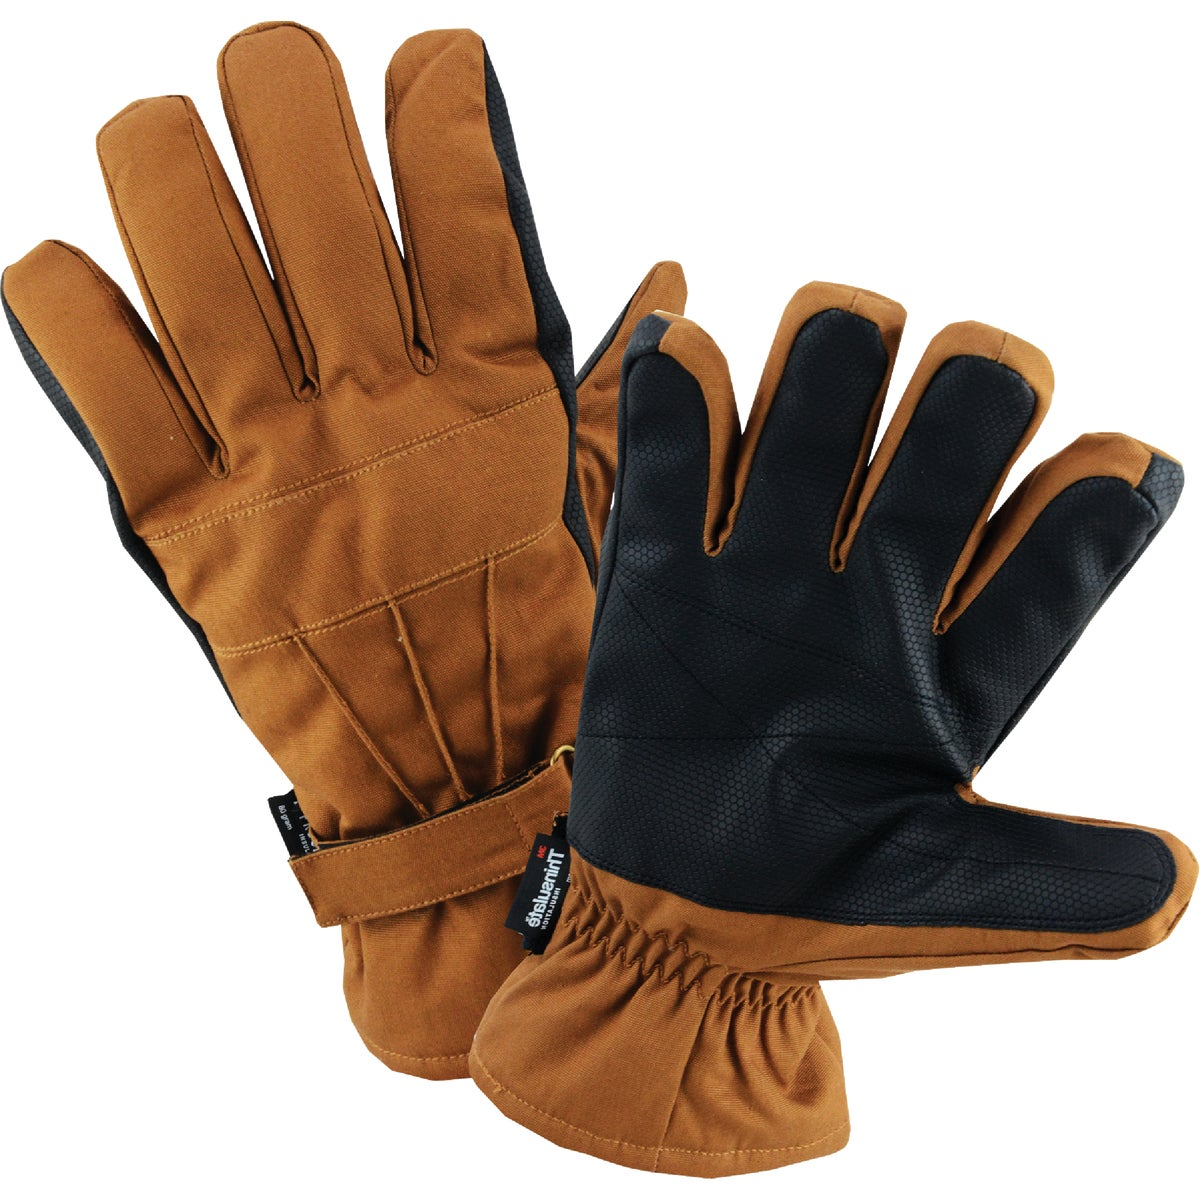 LRG COLDWTHR DUCK GLOVE - 1075L by Wells Lamont